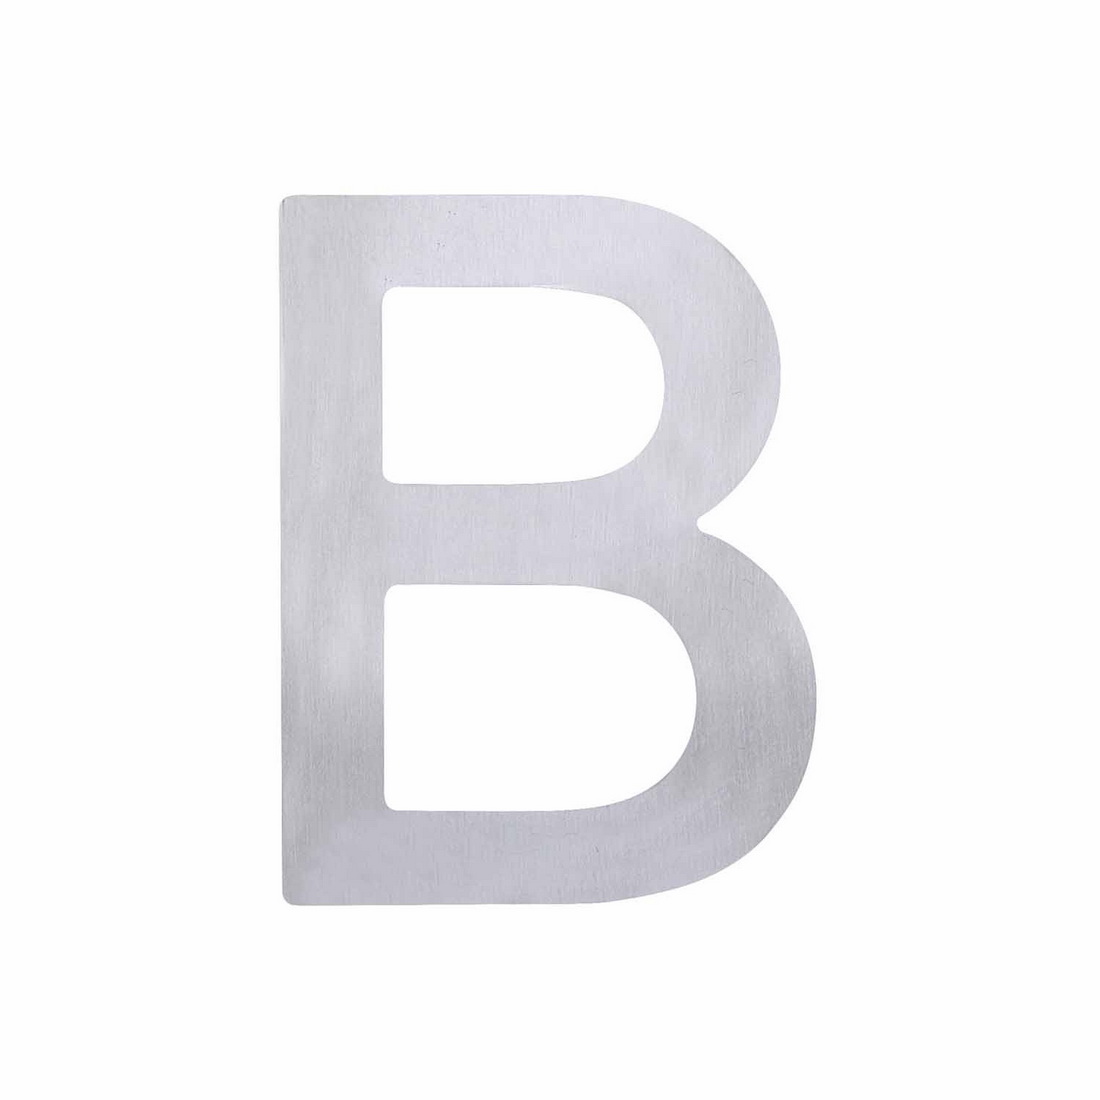 Elements Hardware Adhesive Letter B Stainless Steel 75mm 5371-B-SS